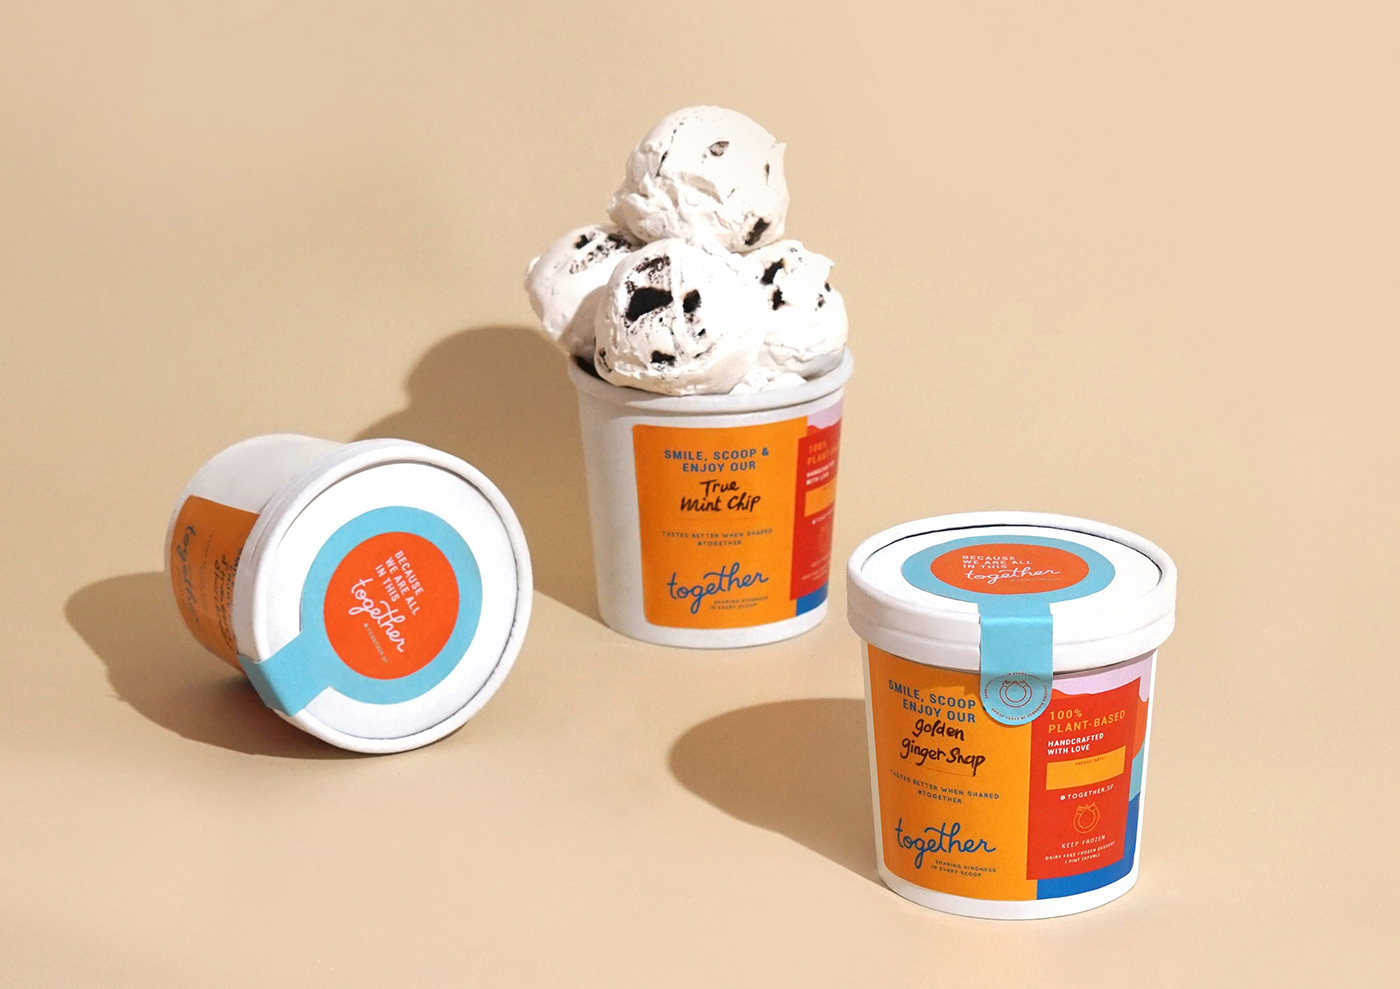 brand identity,branding ,bymerillangie,ice cream branding,logo,merillangie,Packaging,Product Photography,together sf,visual identity